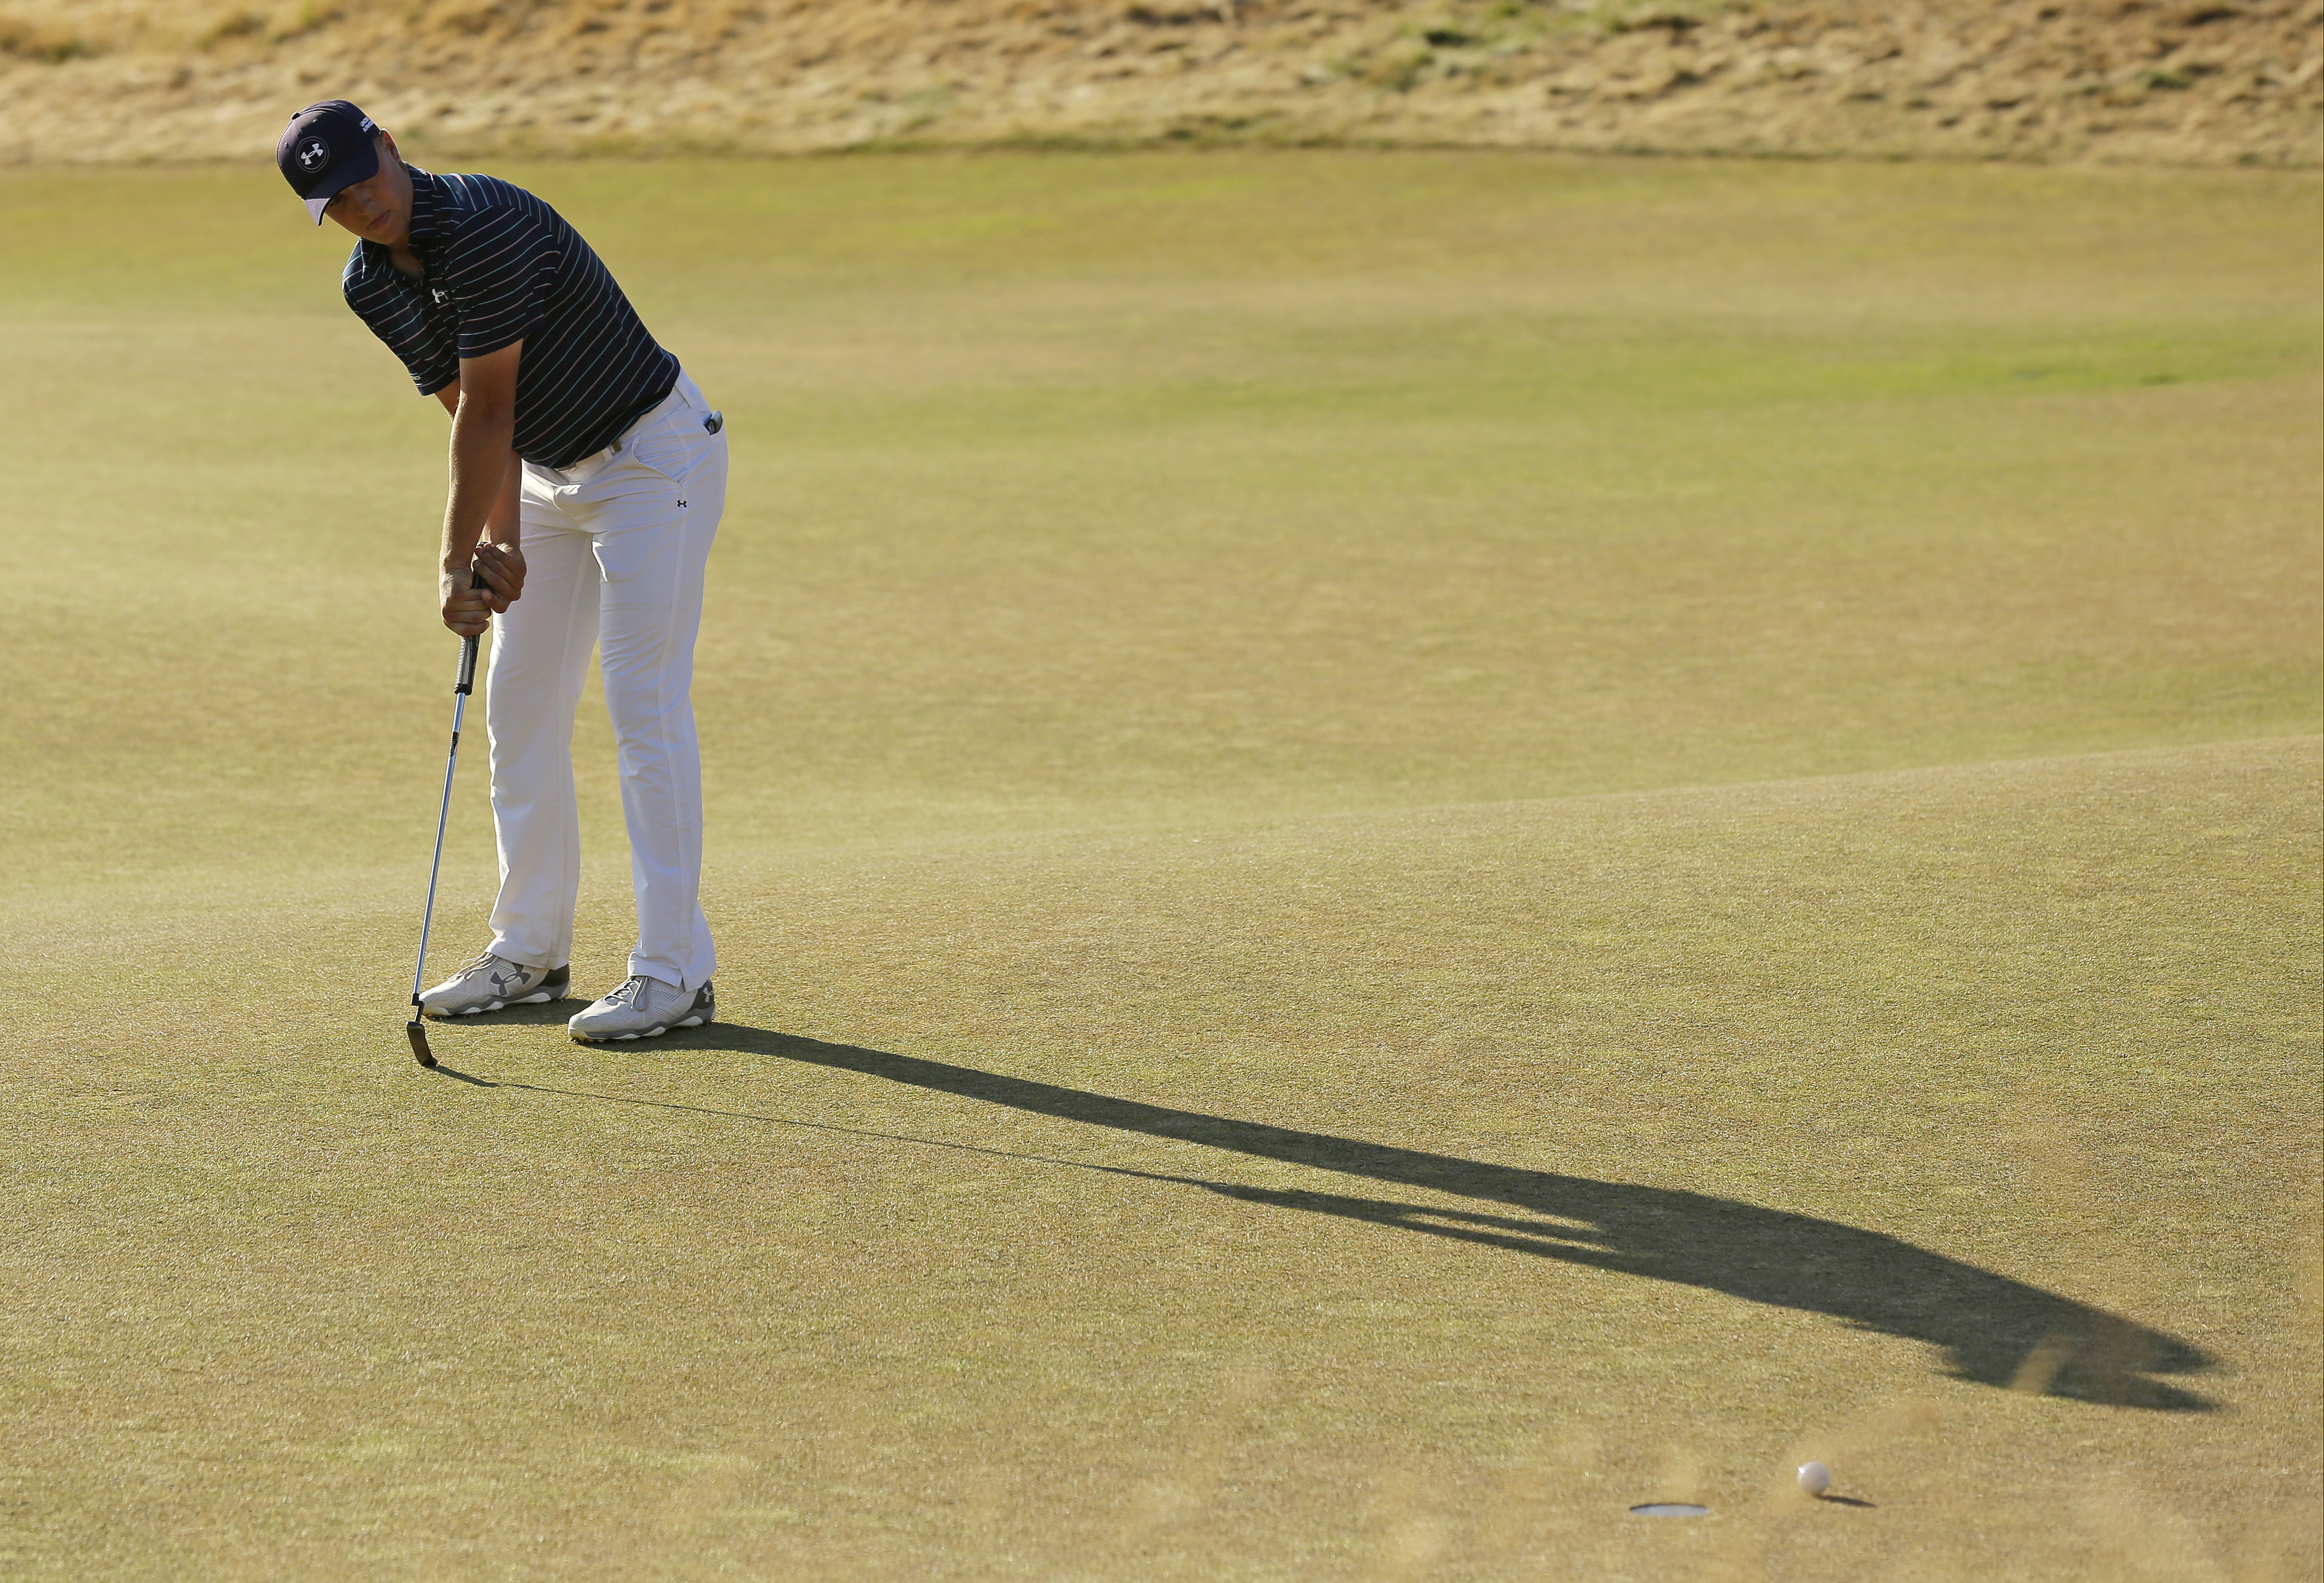 Jordan Spieth misses an eagle putt on the 18th hole during the final round of the U.S. Open golf tournament at Chambers Bay on Sunday, June 21, 2015 in University Place, Wash. (AP Photo/Ted S. Warren)